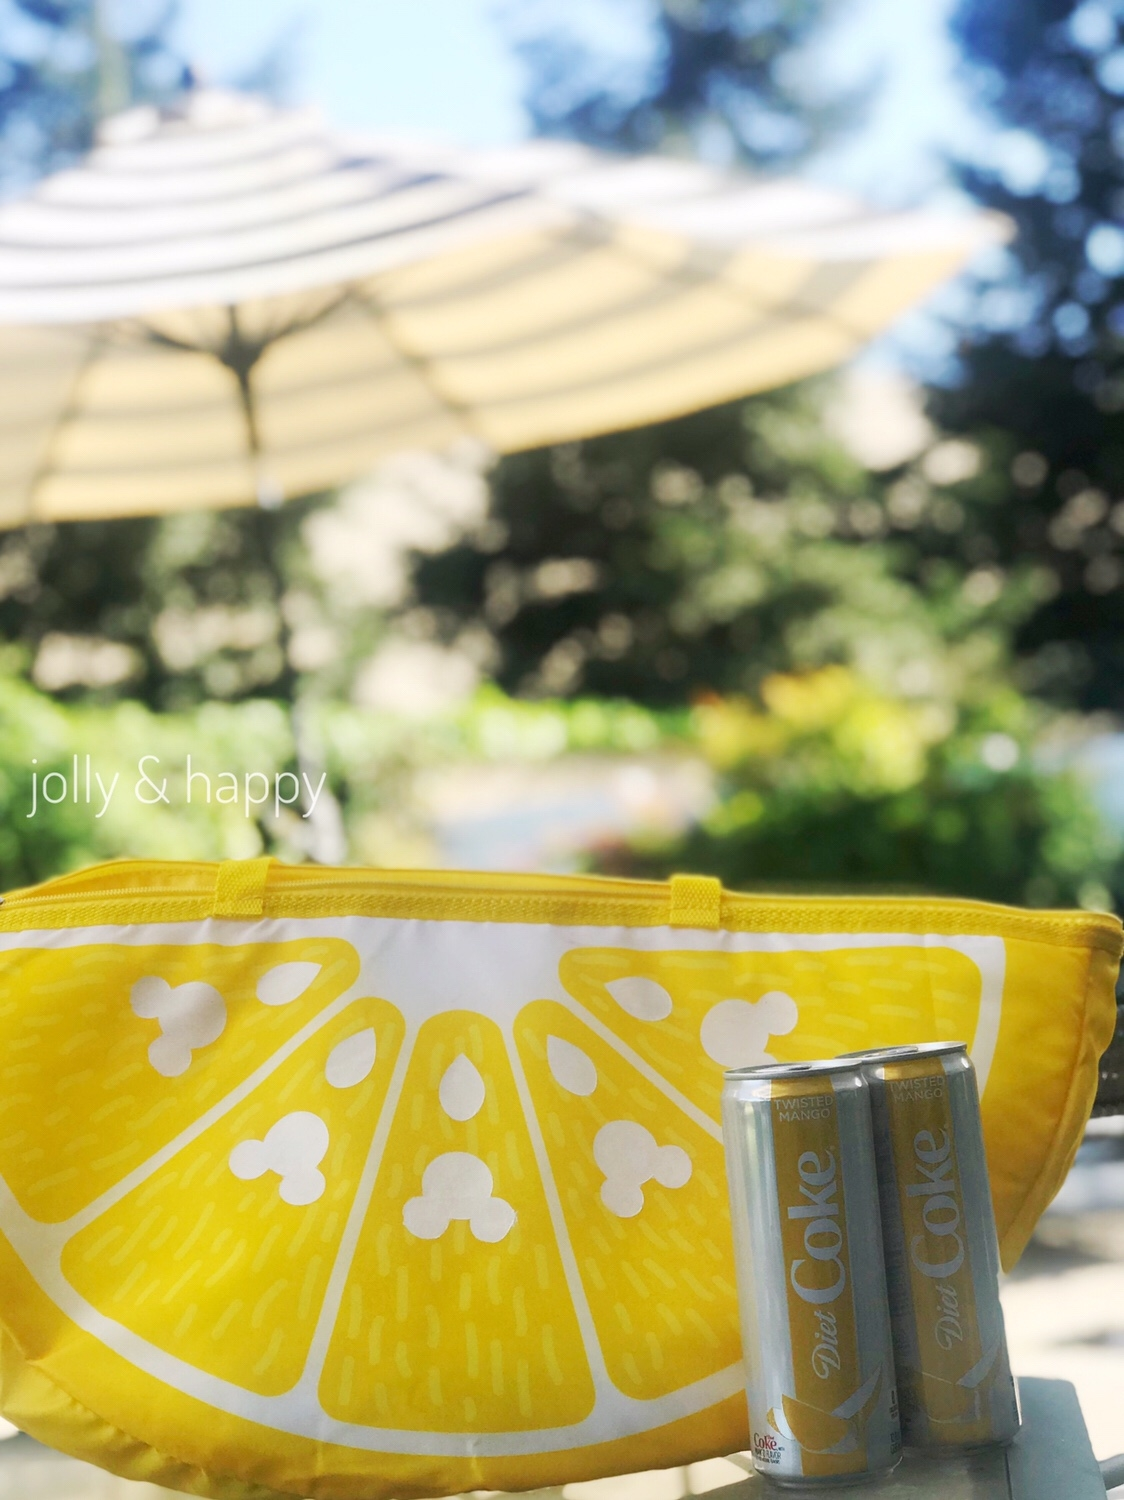 Mickey Lemon Wedge Cooler Bag with Diet Coke